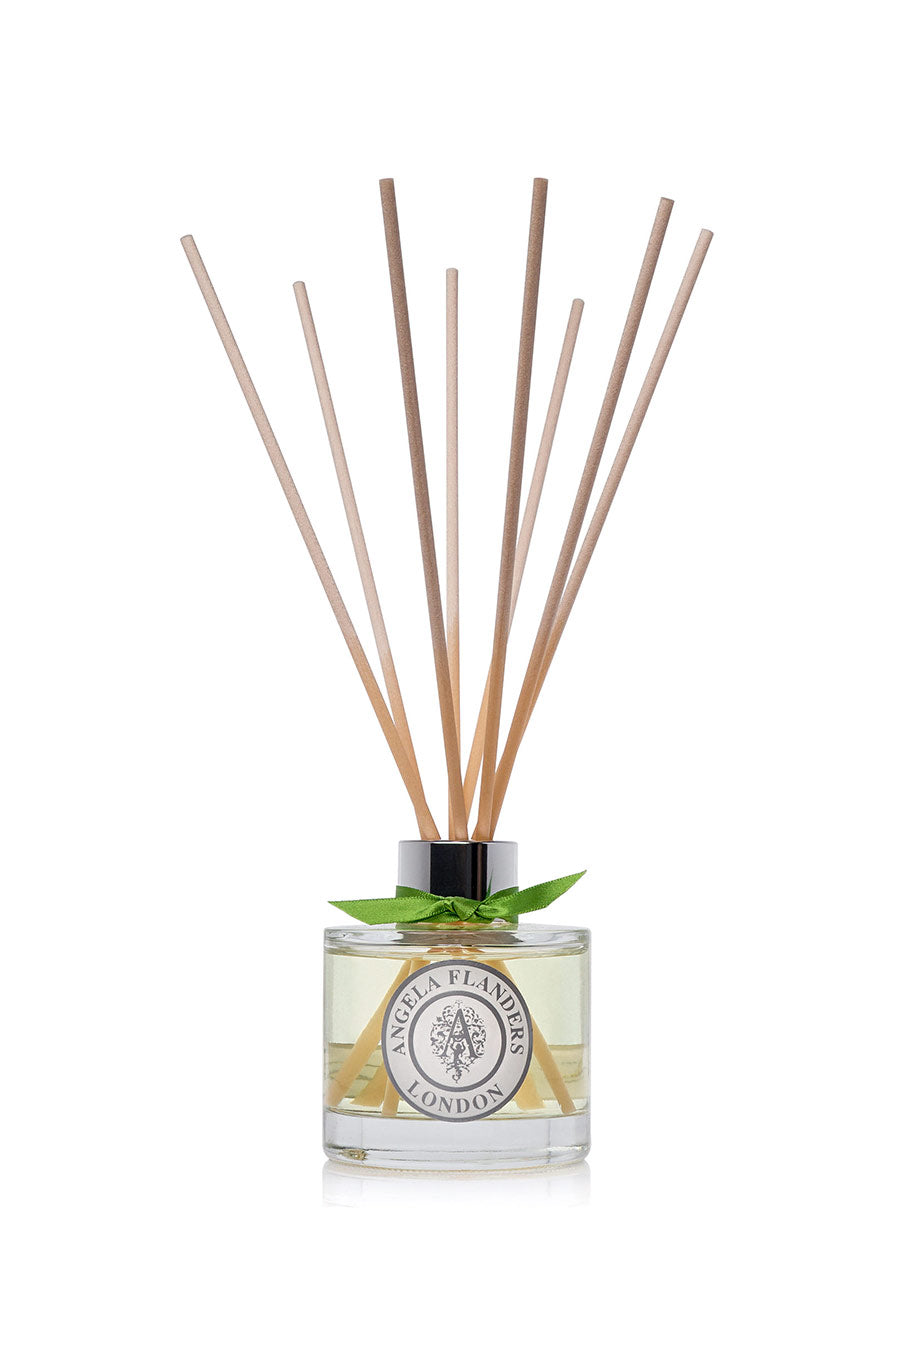 Angela Flanders Lime Flowers Reed Diffuser